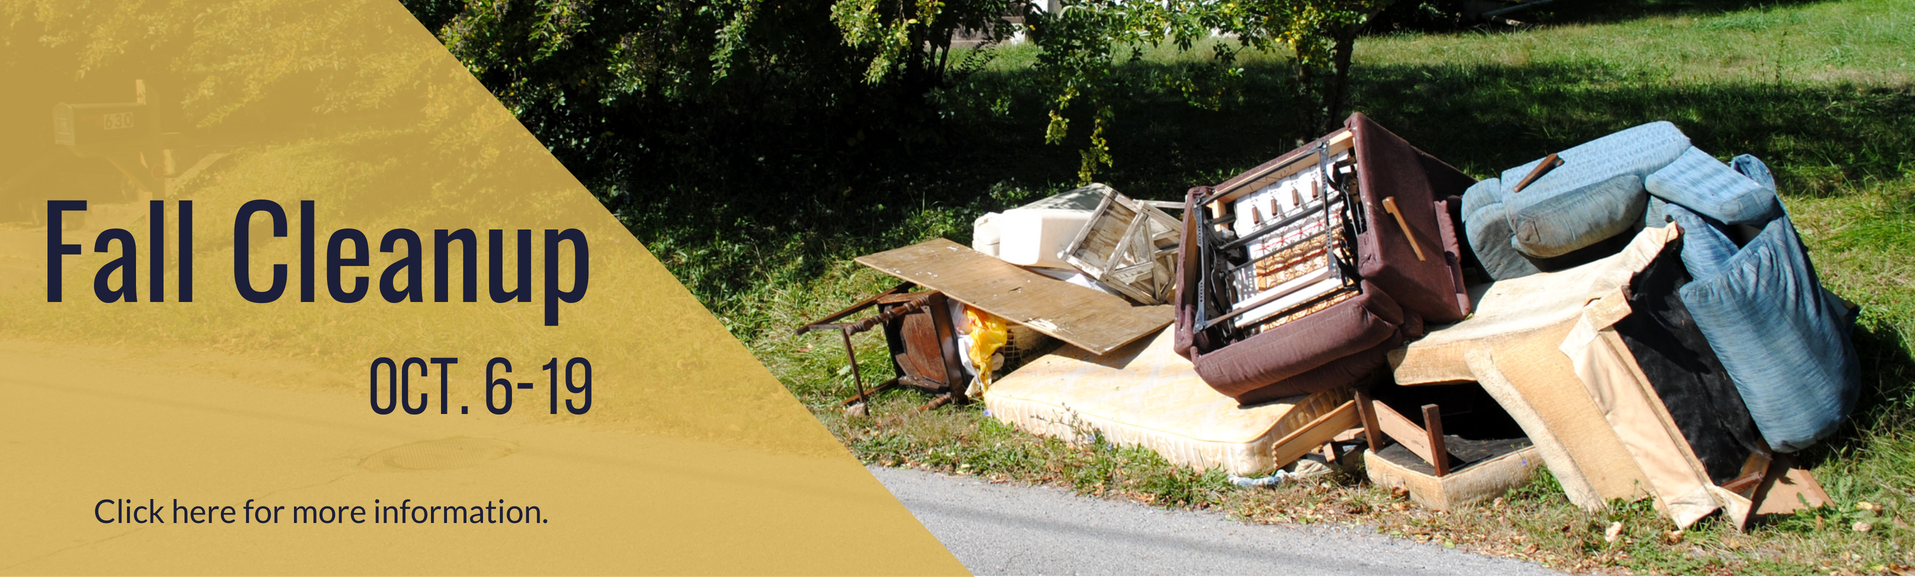 Click here for more information about Fall Cleanup.